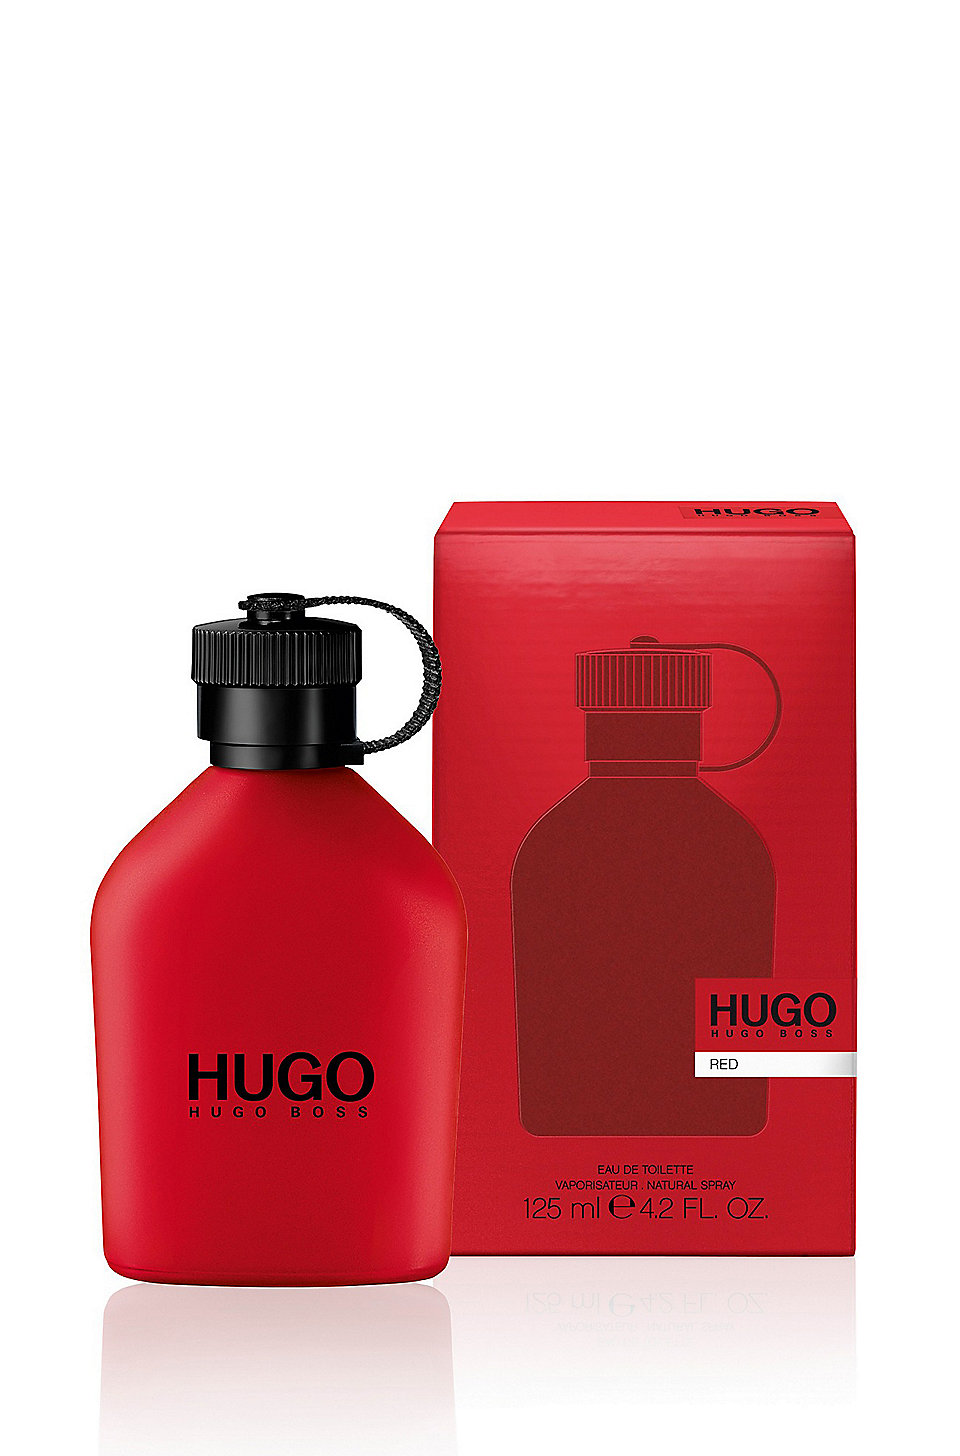 hugo 4 2 fl oz 125 ml eau de toilette hugo red. Black Bedroom Furniture Sets. Home Design Ideas